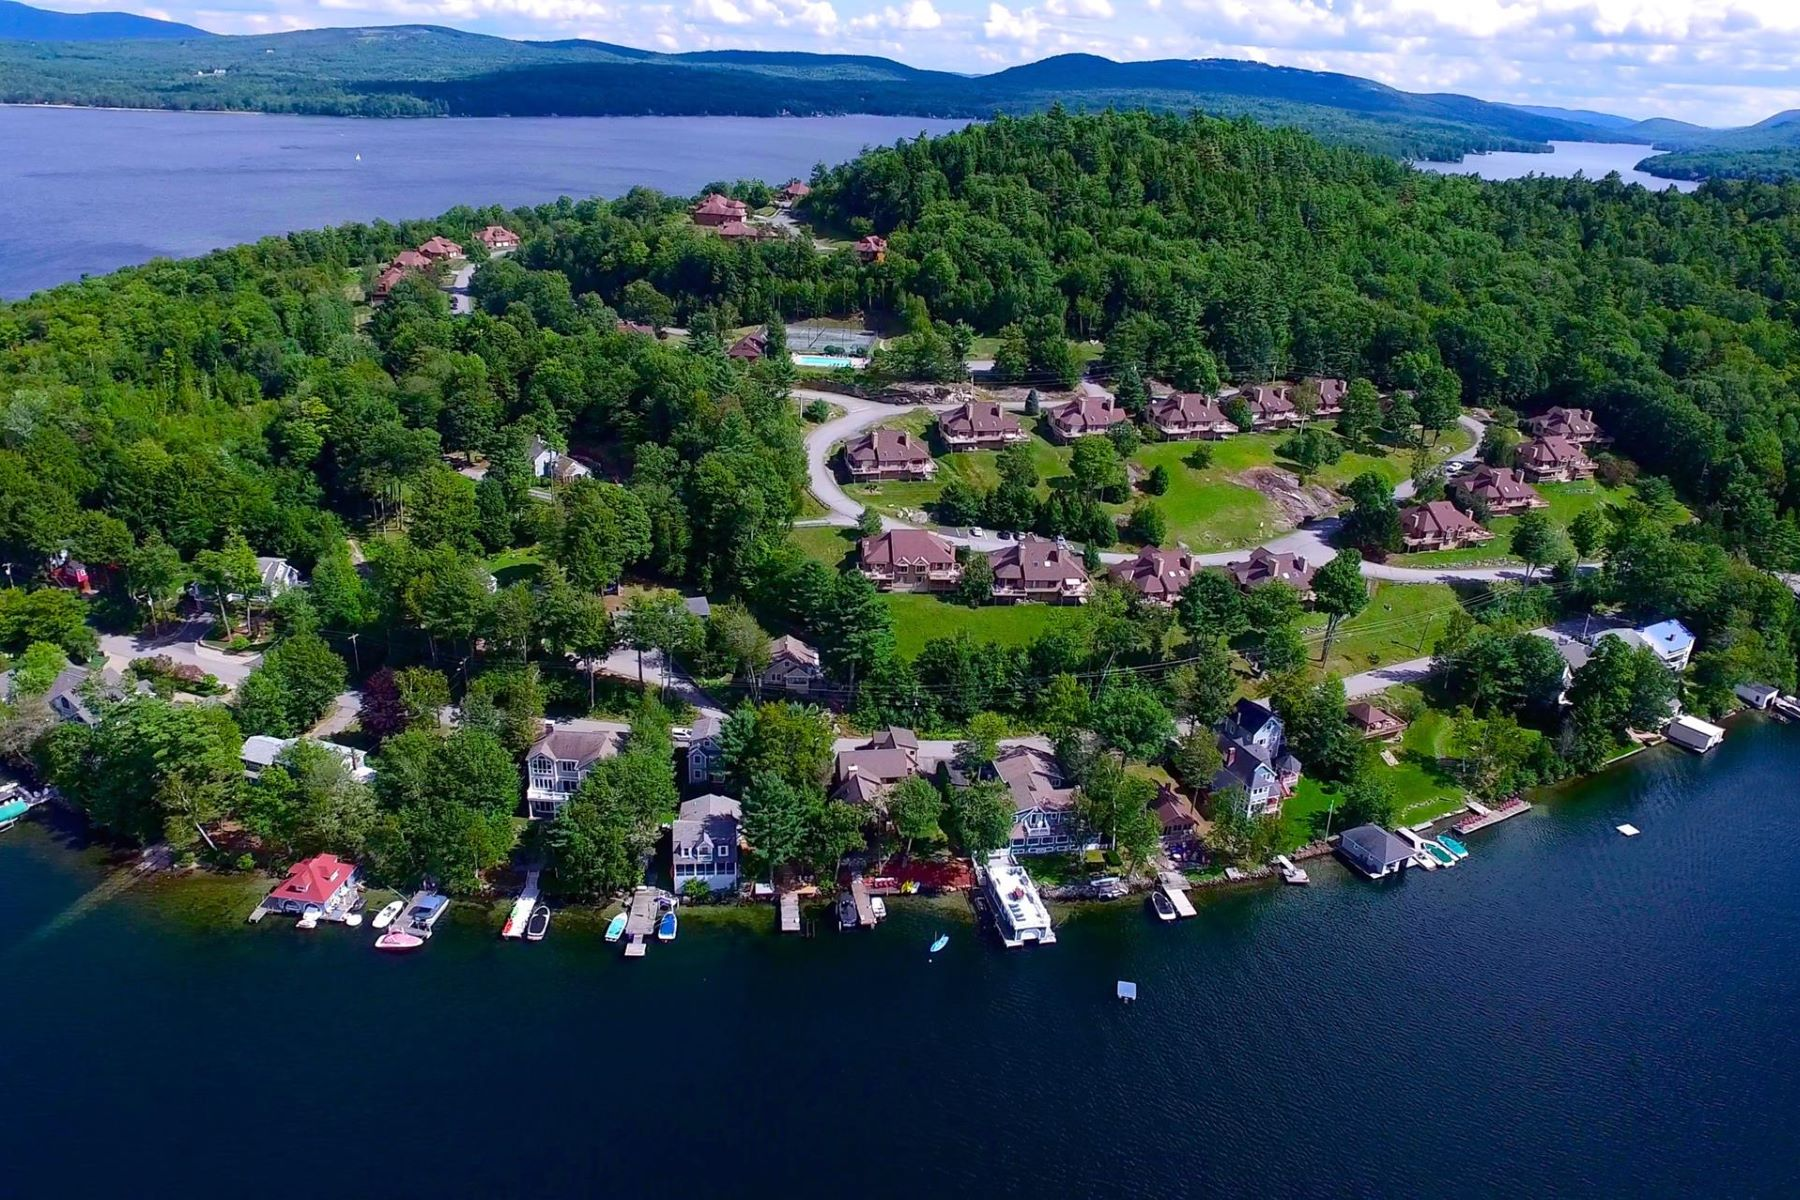 Condominium for Sale at Indian Cave - Lake Sunapee 9A Indian Cave Rd 9A Sunapee, New Hampshire 03782 United States